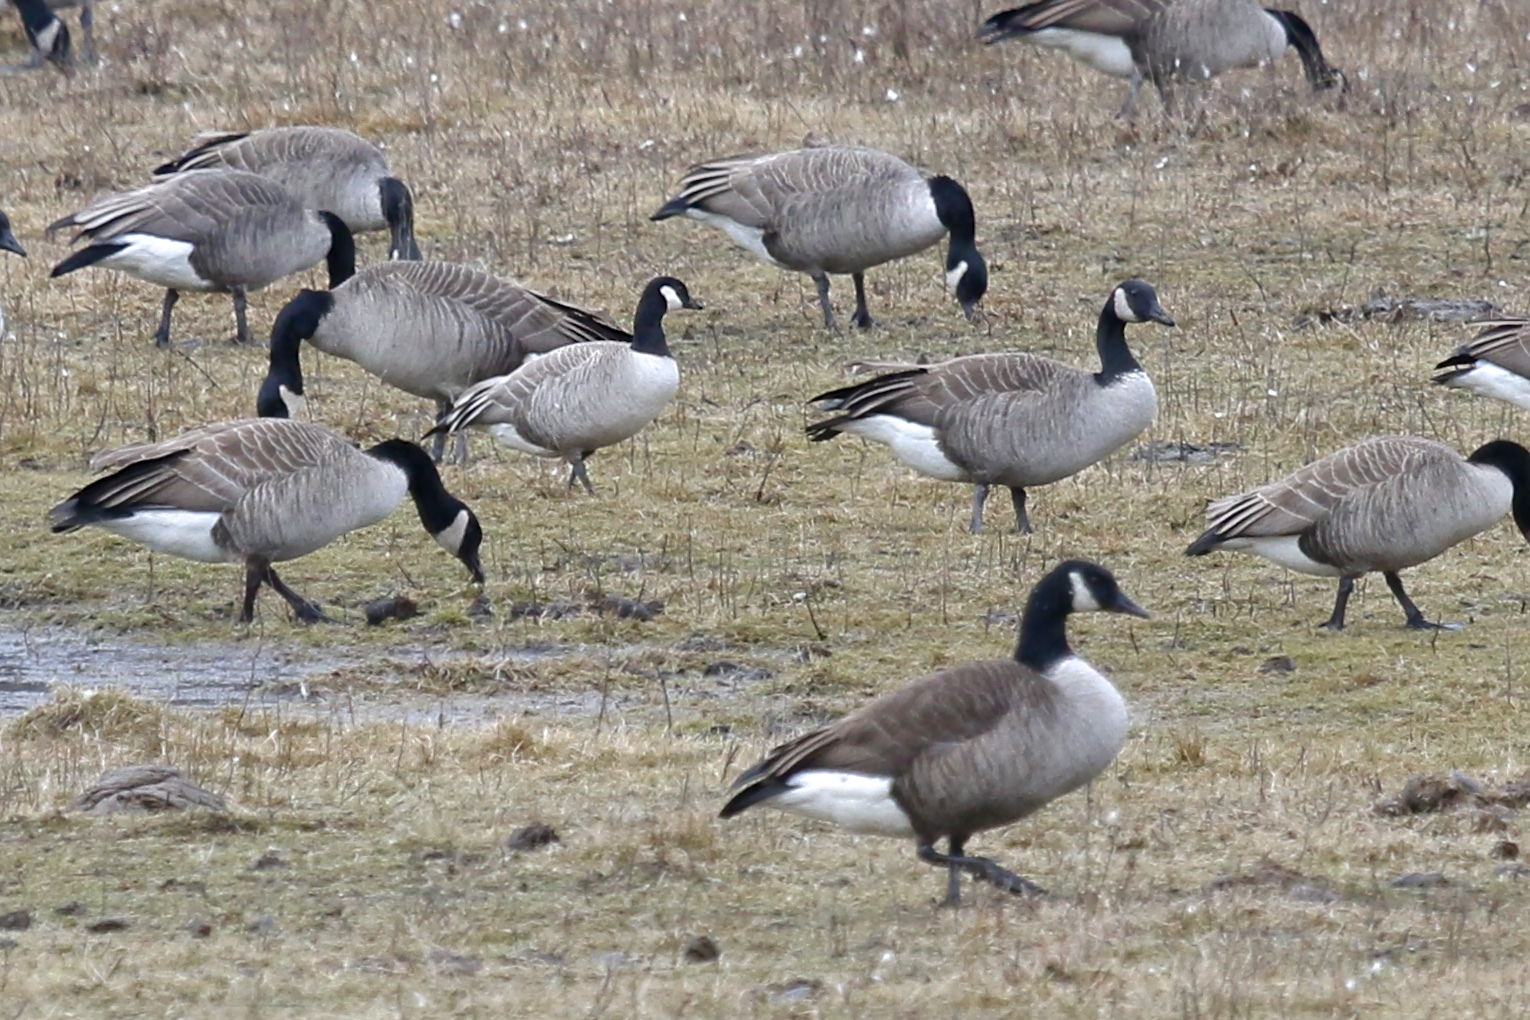 Cackling Goose with Canada Geese at the Camel Farm in Orange County NY, 12/28/14.